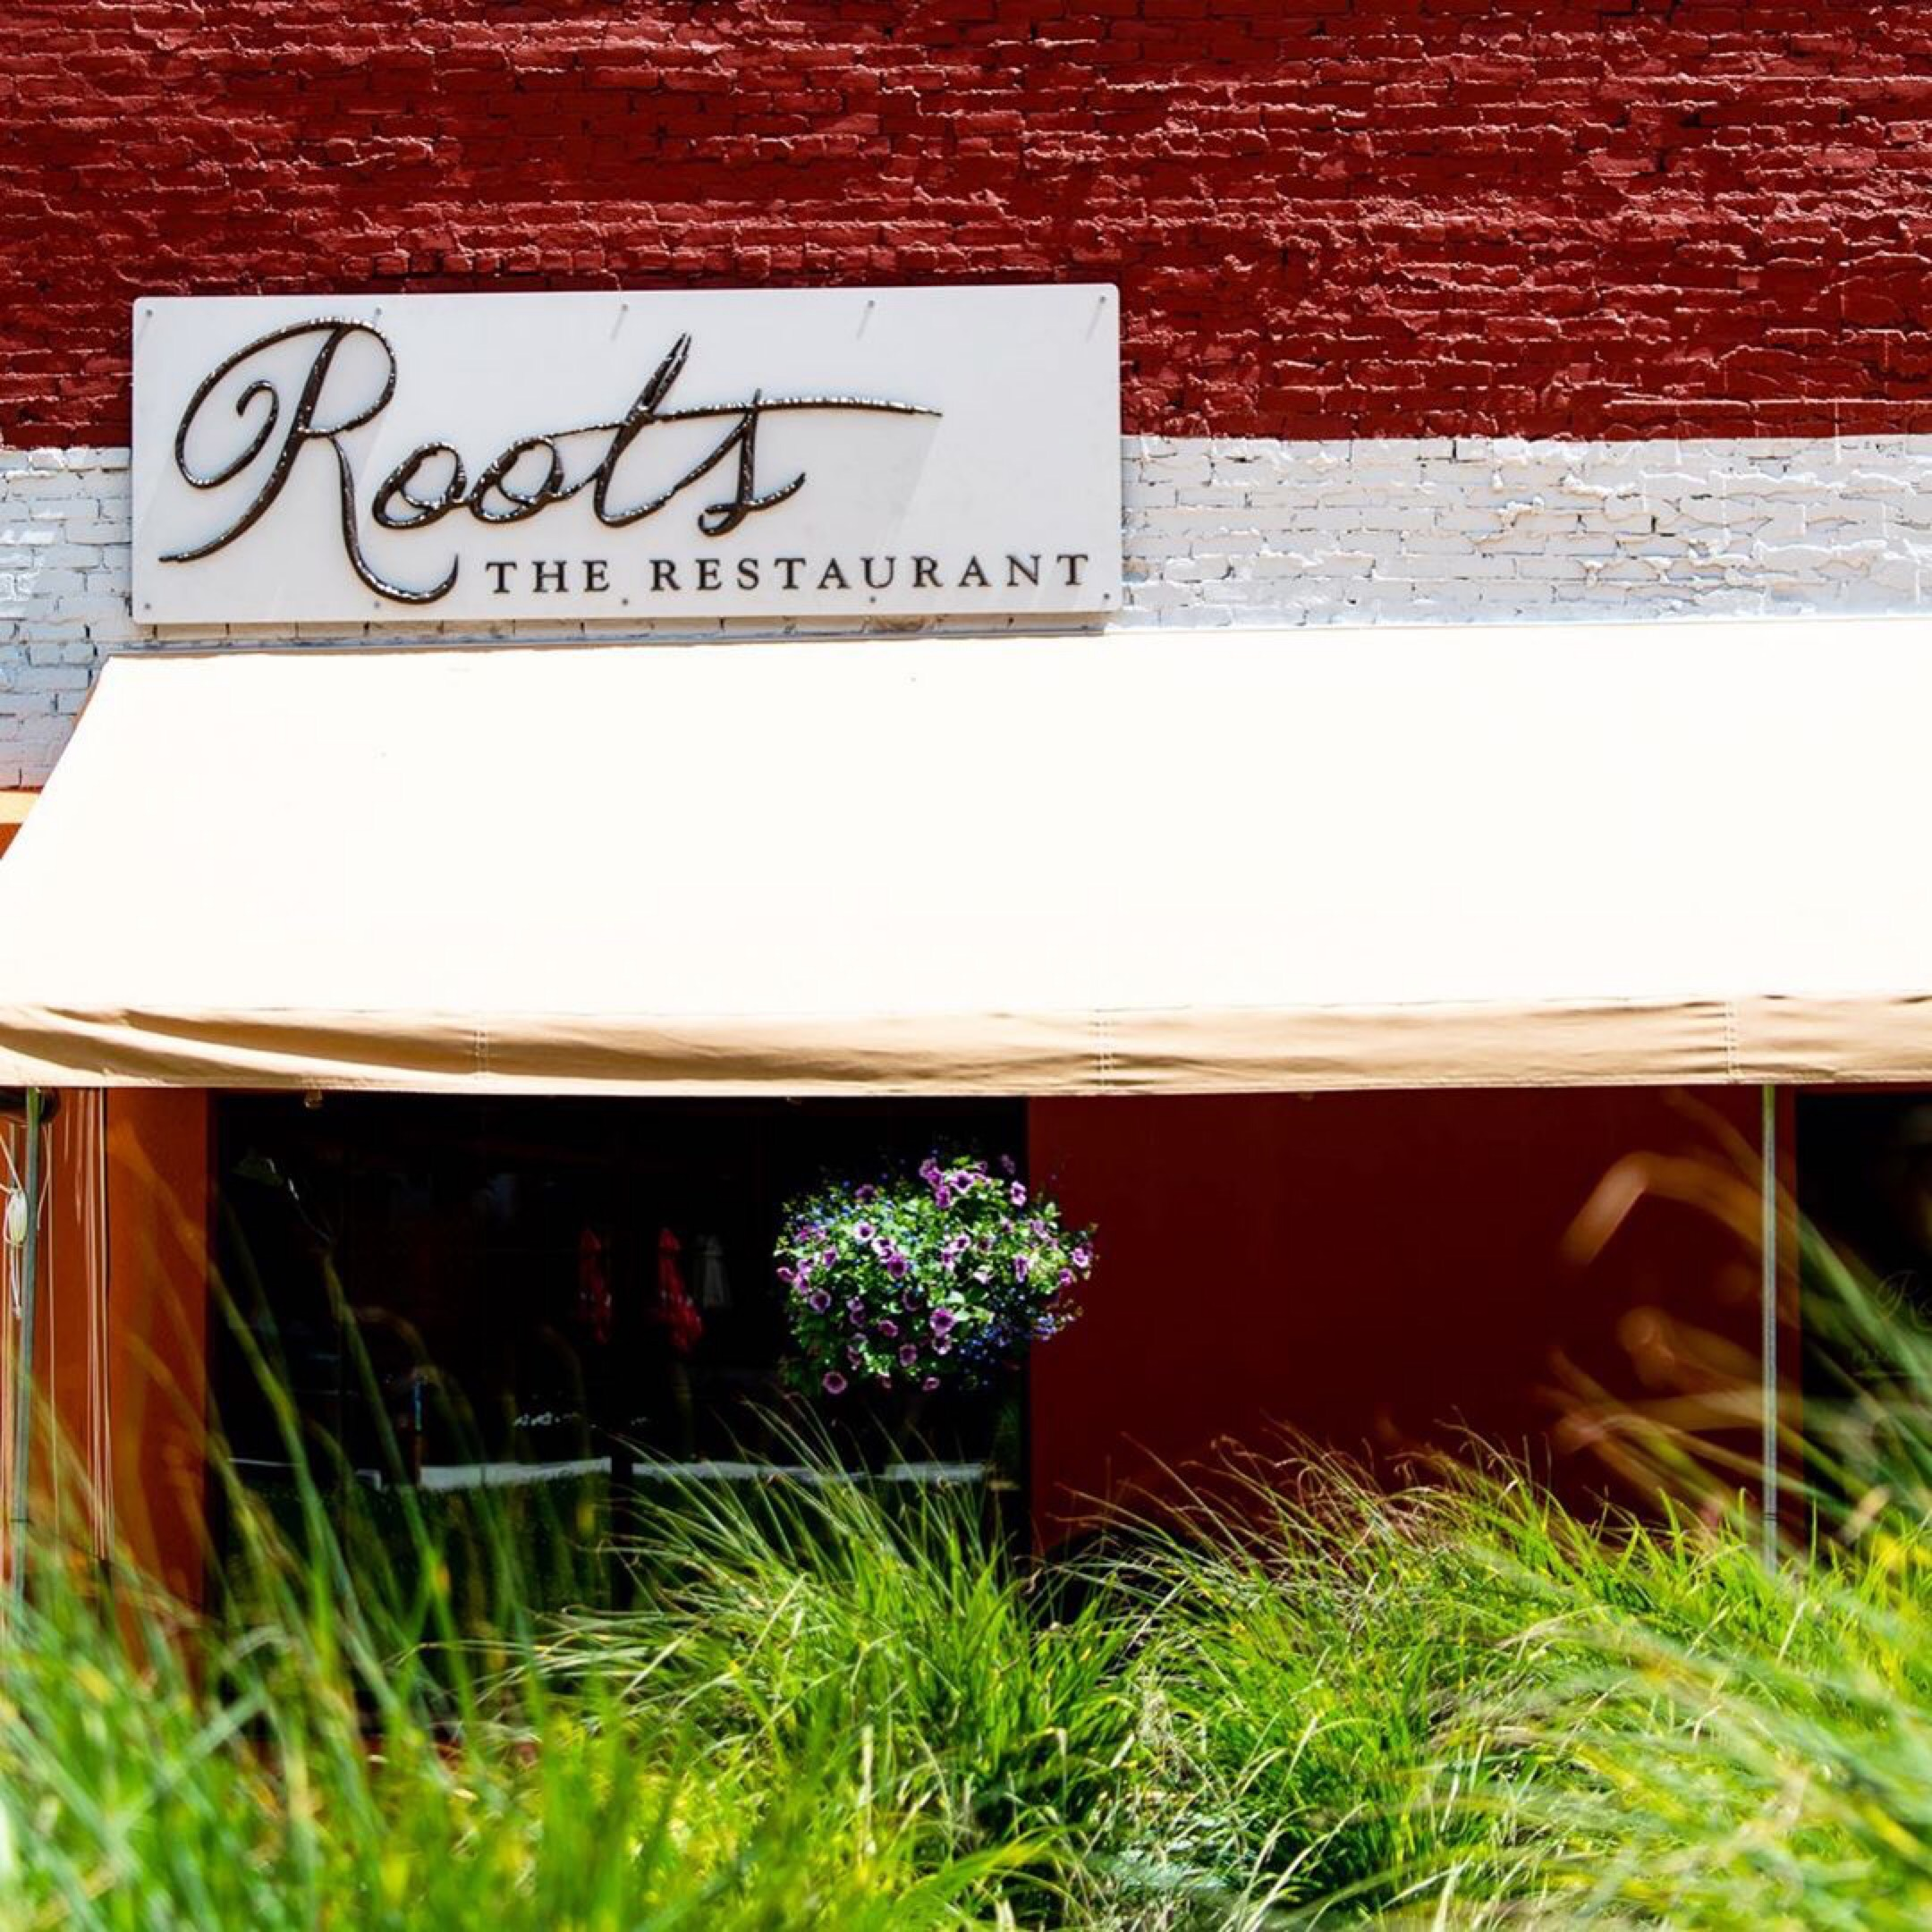 A view of the patio at Roots, now located in the Center Street Marketplace Park off of Washington Street in Downtown Rutland. Photo credit: Martin Schreiner / Rutland Foodie